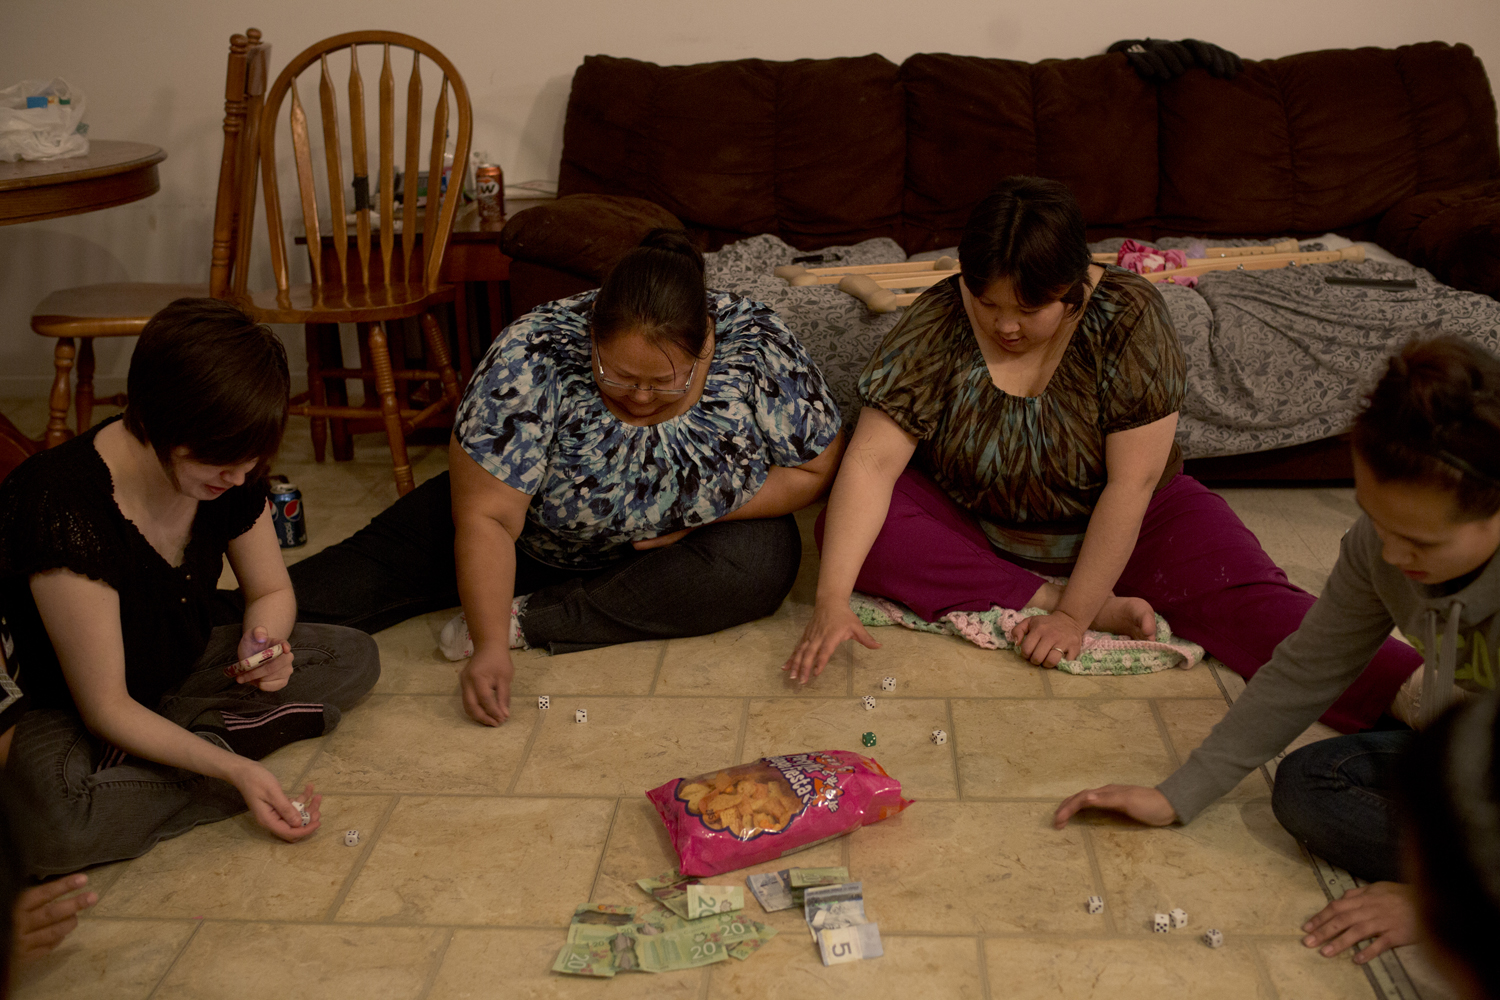 Arviat, Canada, Oct. 19, 2013. Kristy Cablutsiak, Sharon Aulatjut, and Katelyn Tiktaq gather to play 'Frankies', a dice game. Everyone puts money into a pool at the beginning of each game, and players must roll a consecutive combination of matching dice to win the pot. The game is played until the money runs out.